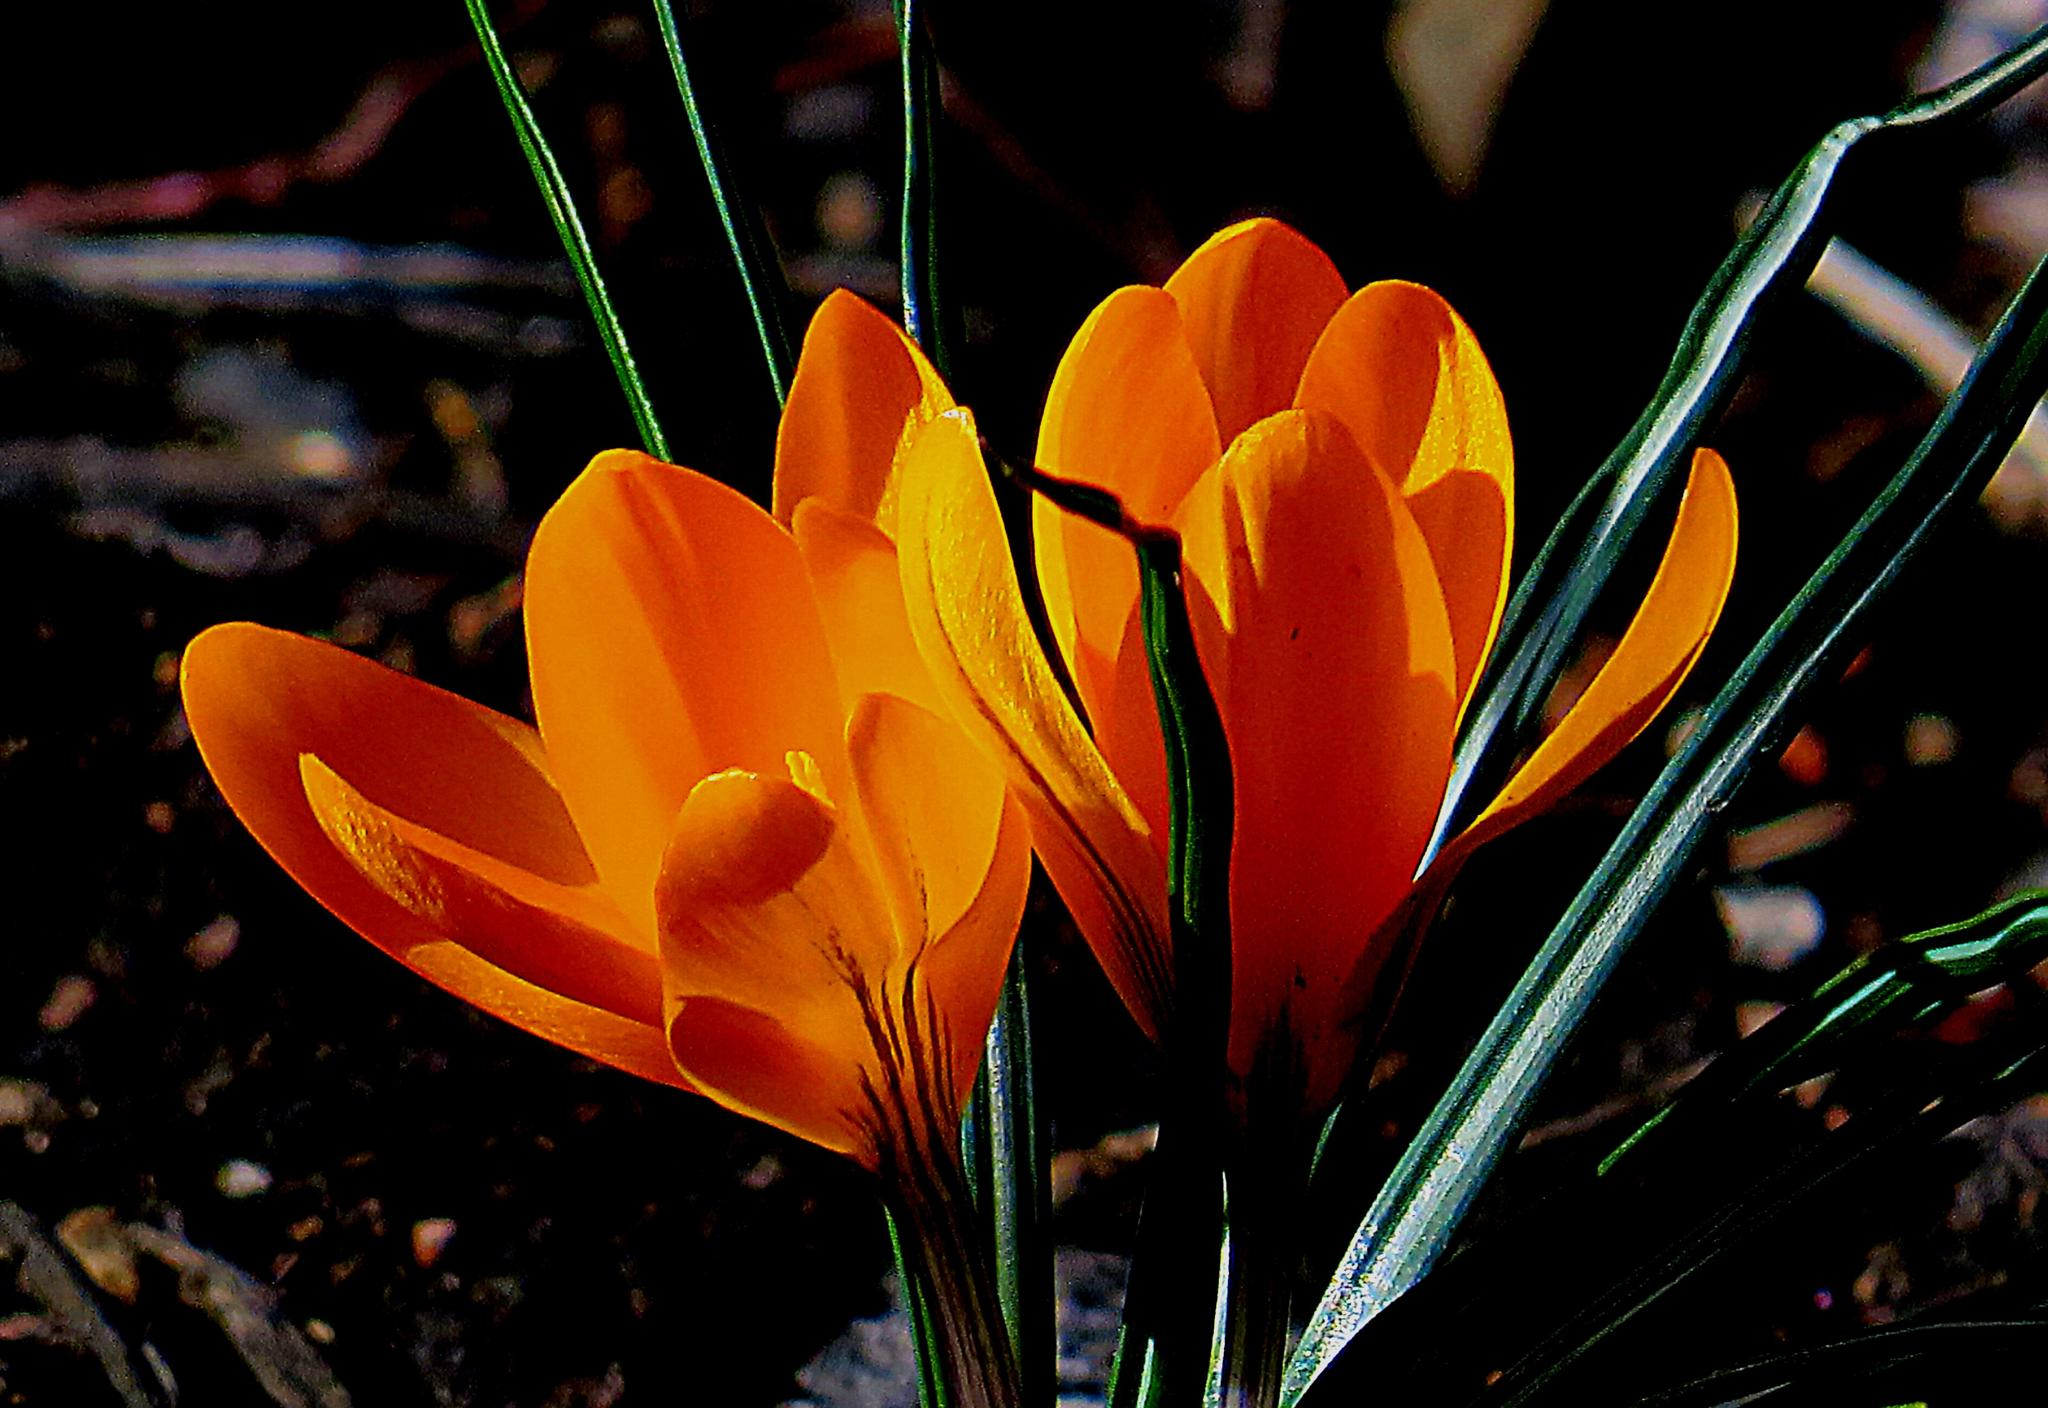 Brilliant crocus blossoms by pennieawhite